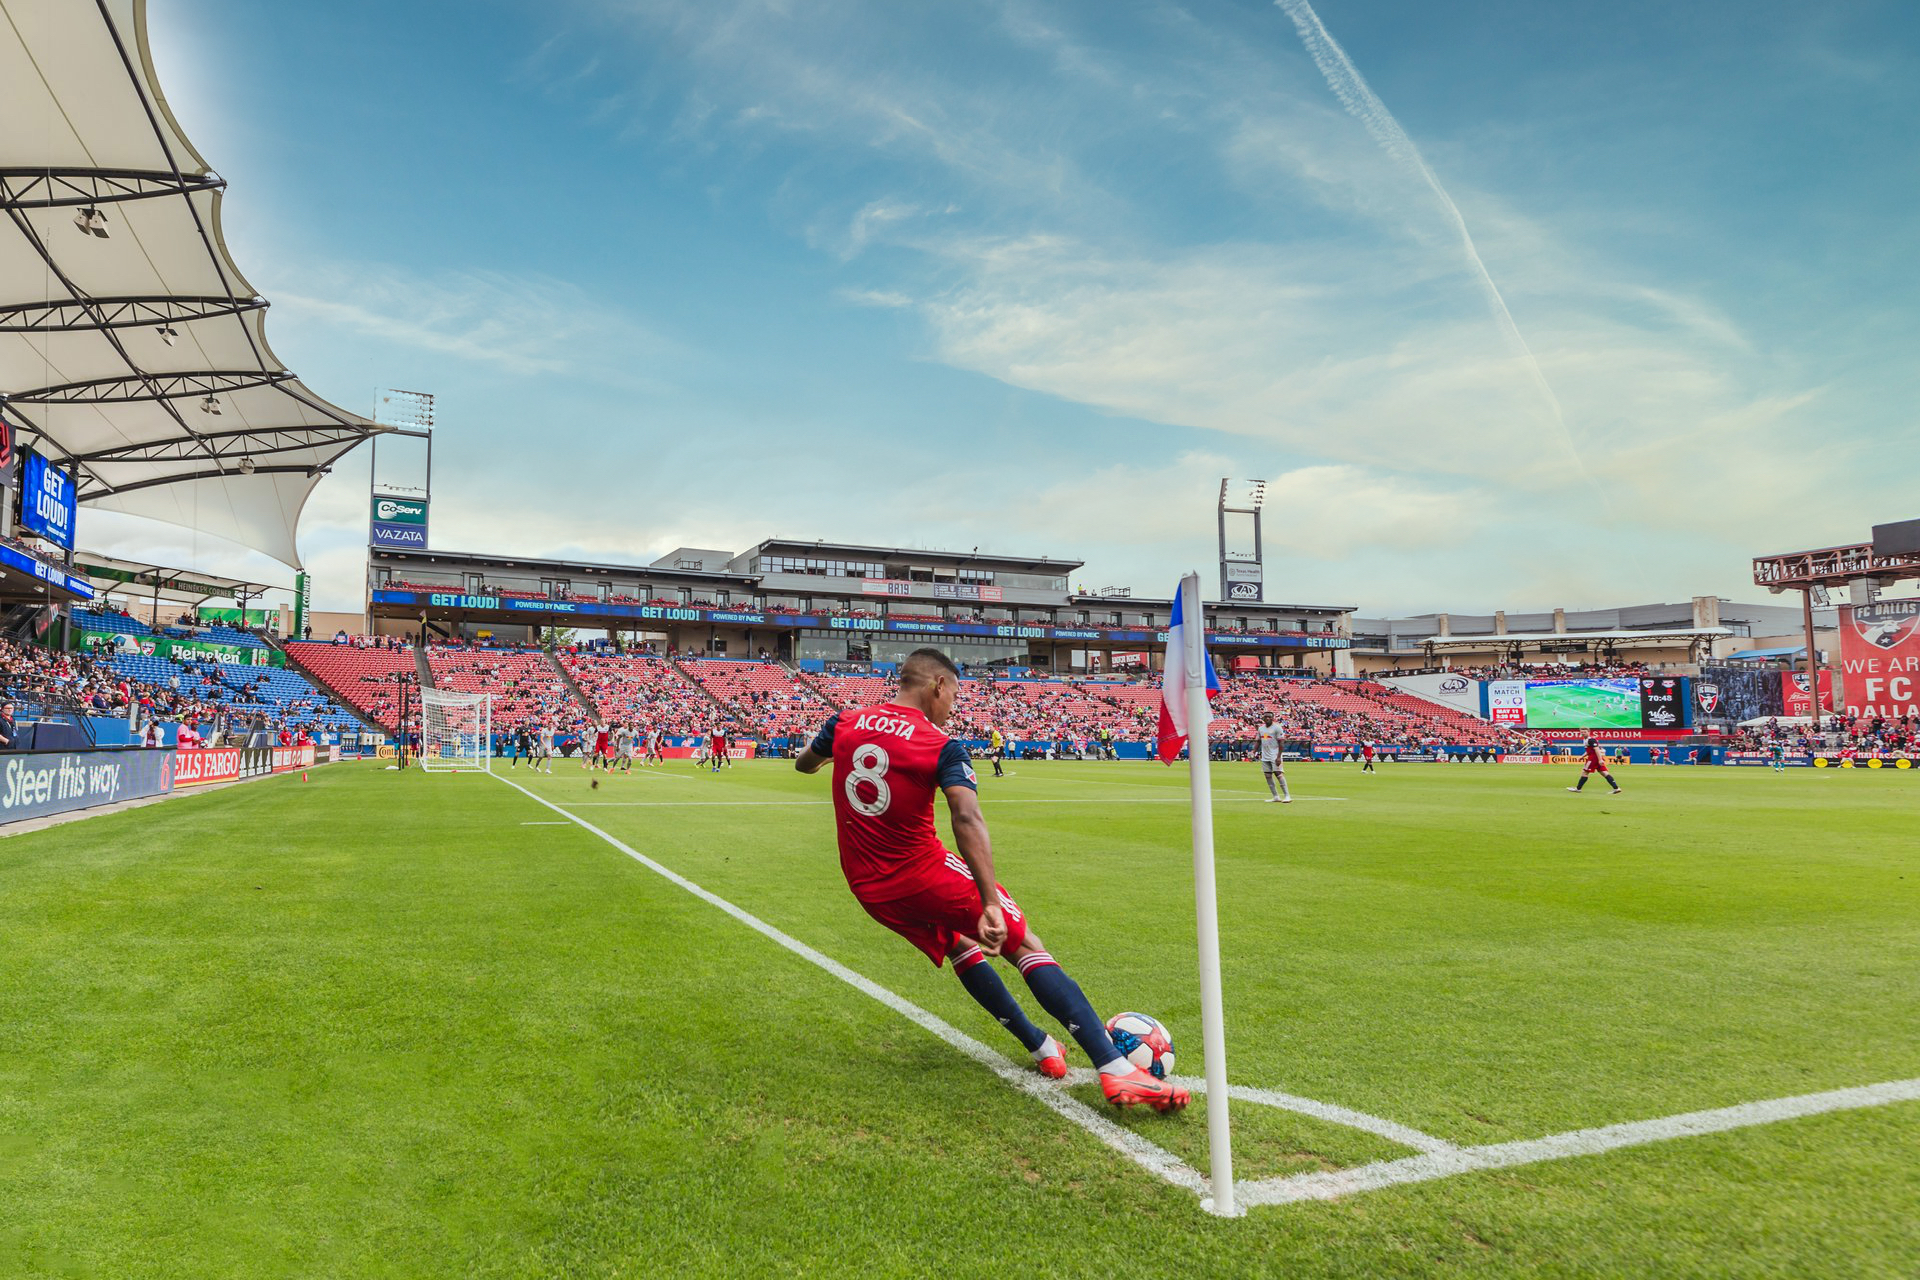 A soccer player performs a corner kick at Toyota Stadium.